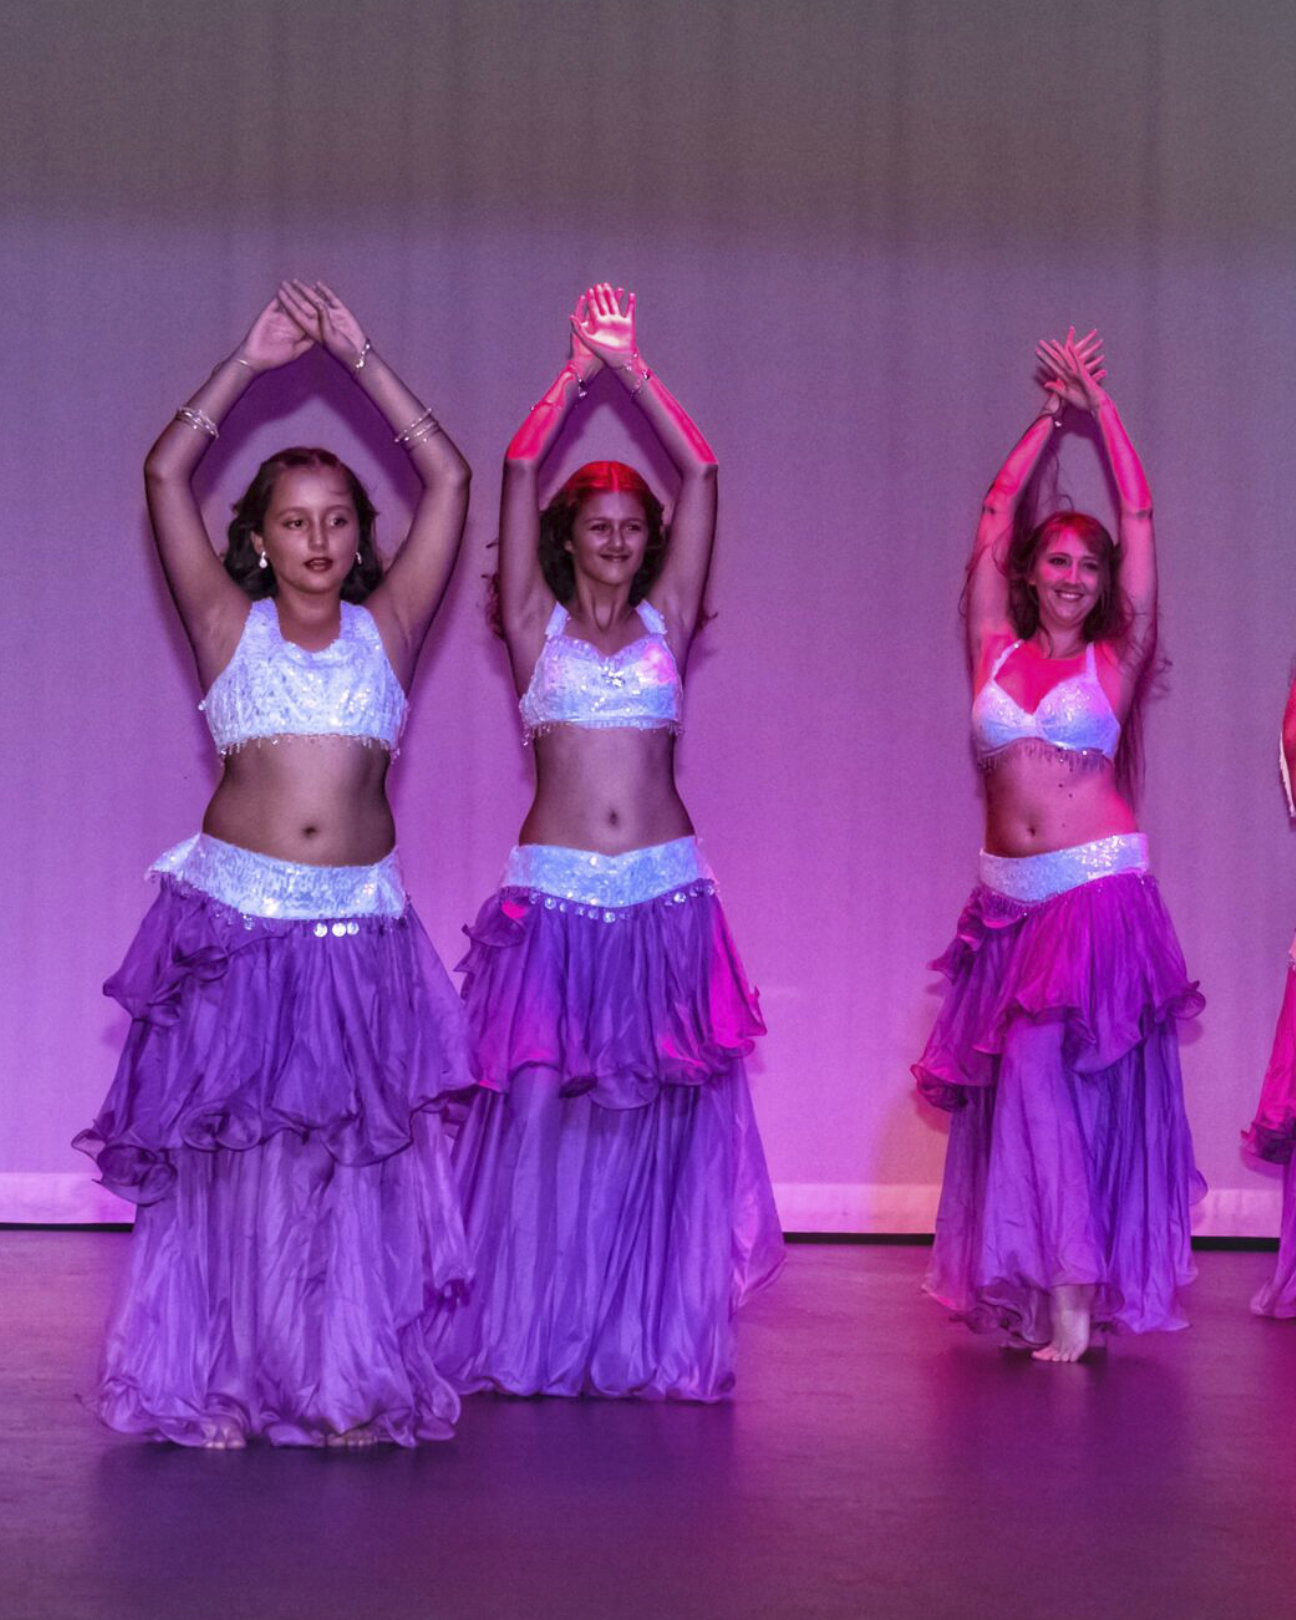 3 Belly Dancing Performers Photos